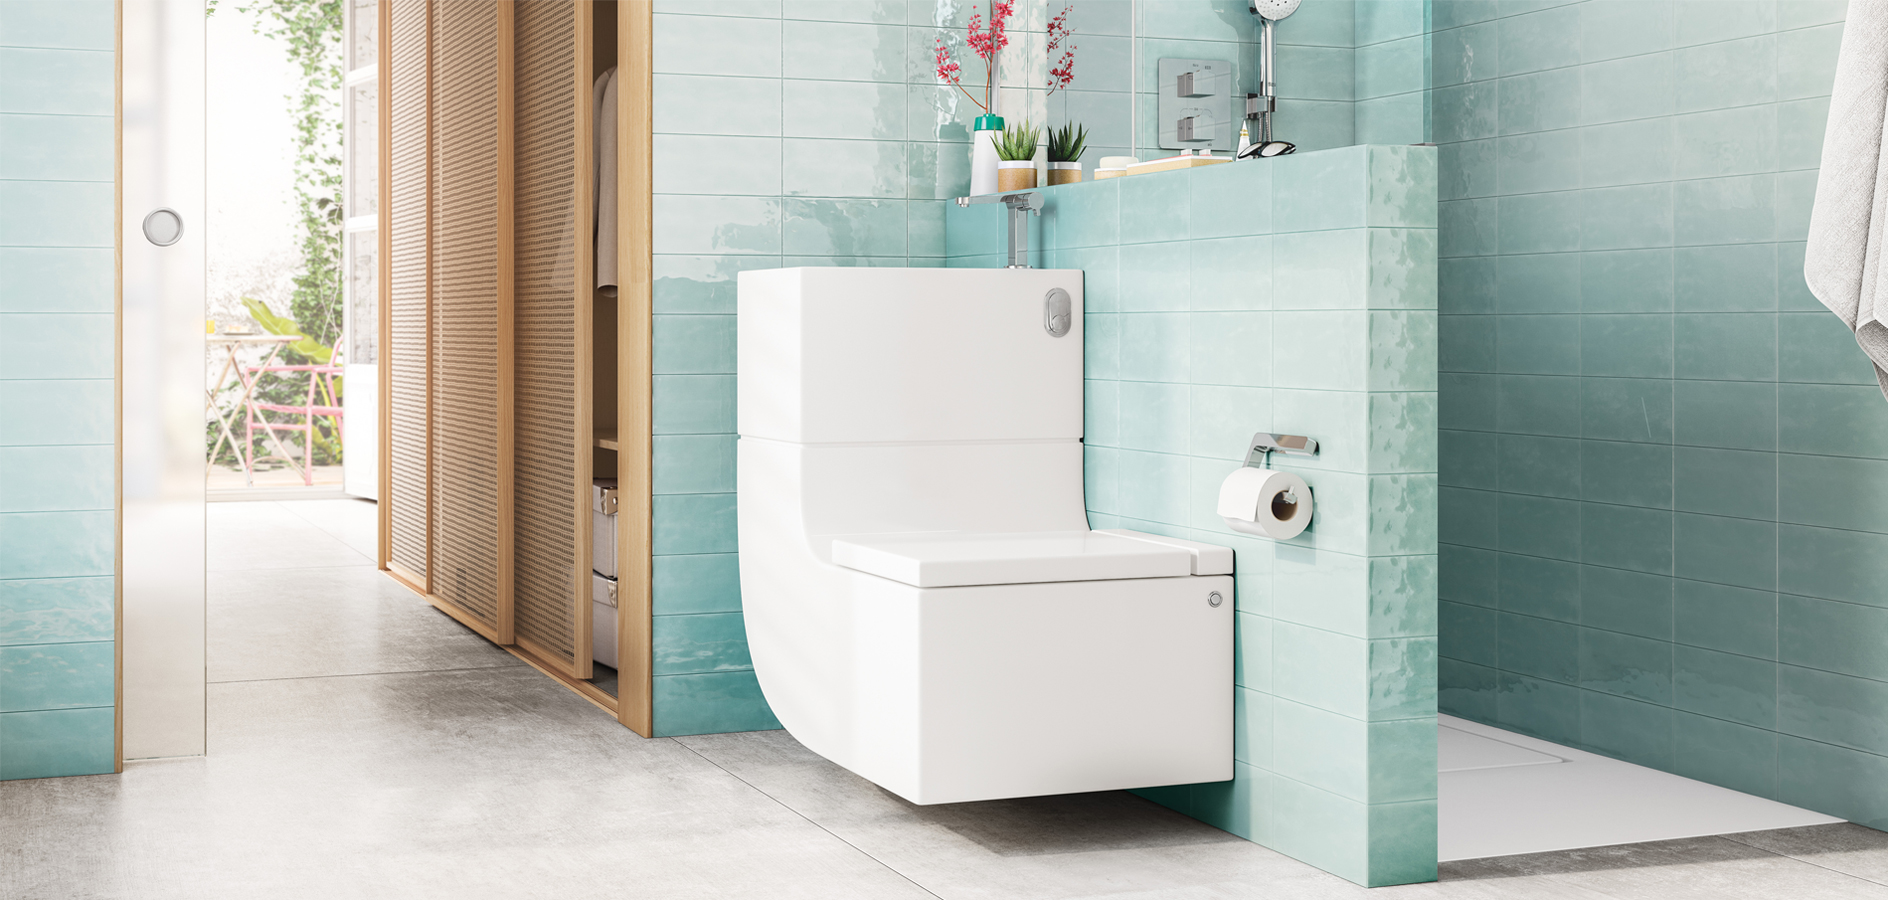 Basin and WC in one single piece? Join the W+W revolution | Roca Life